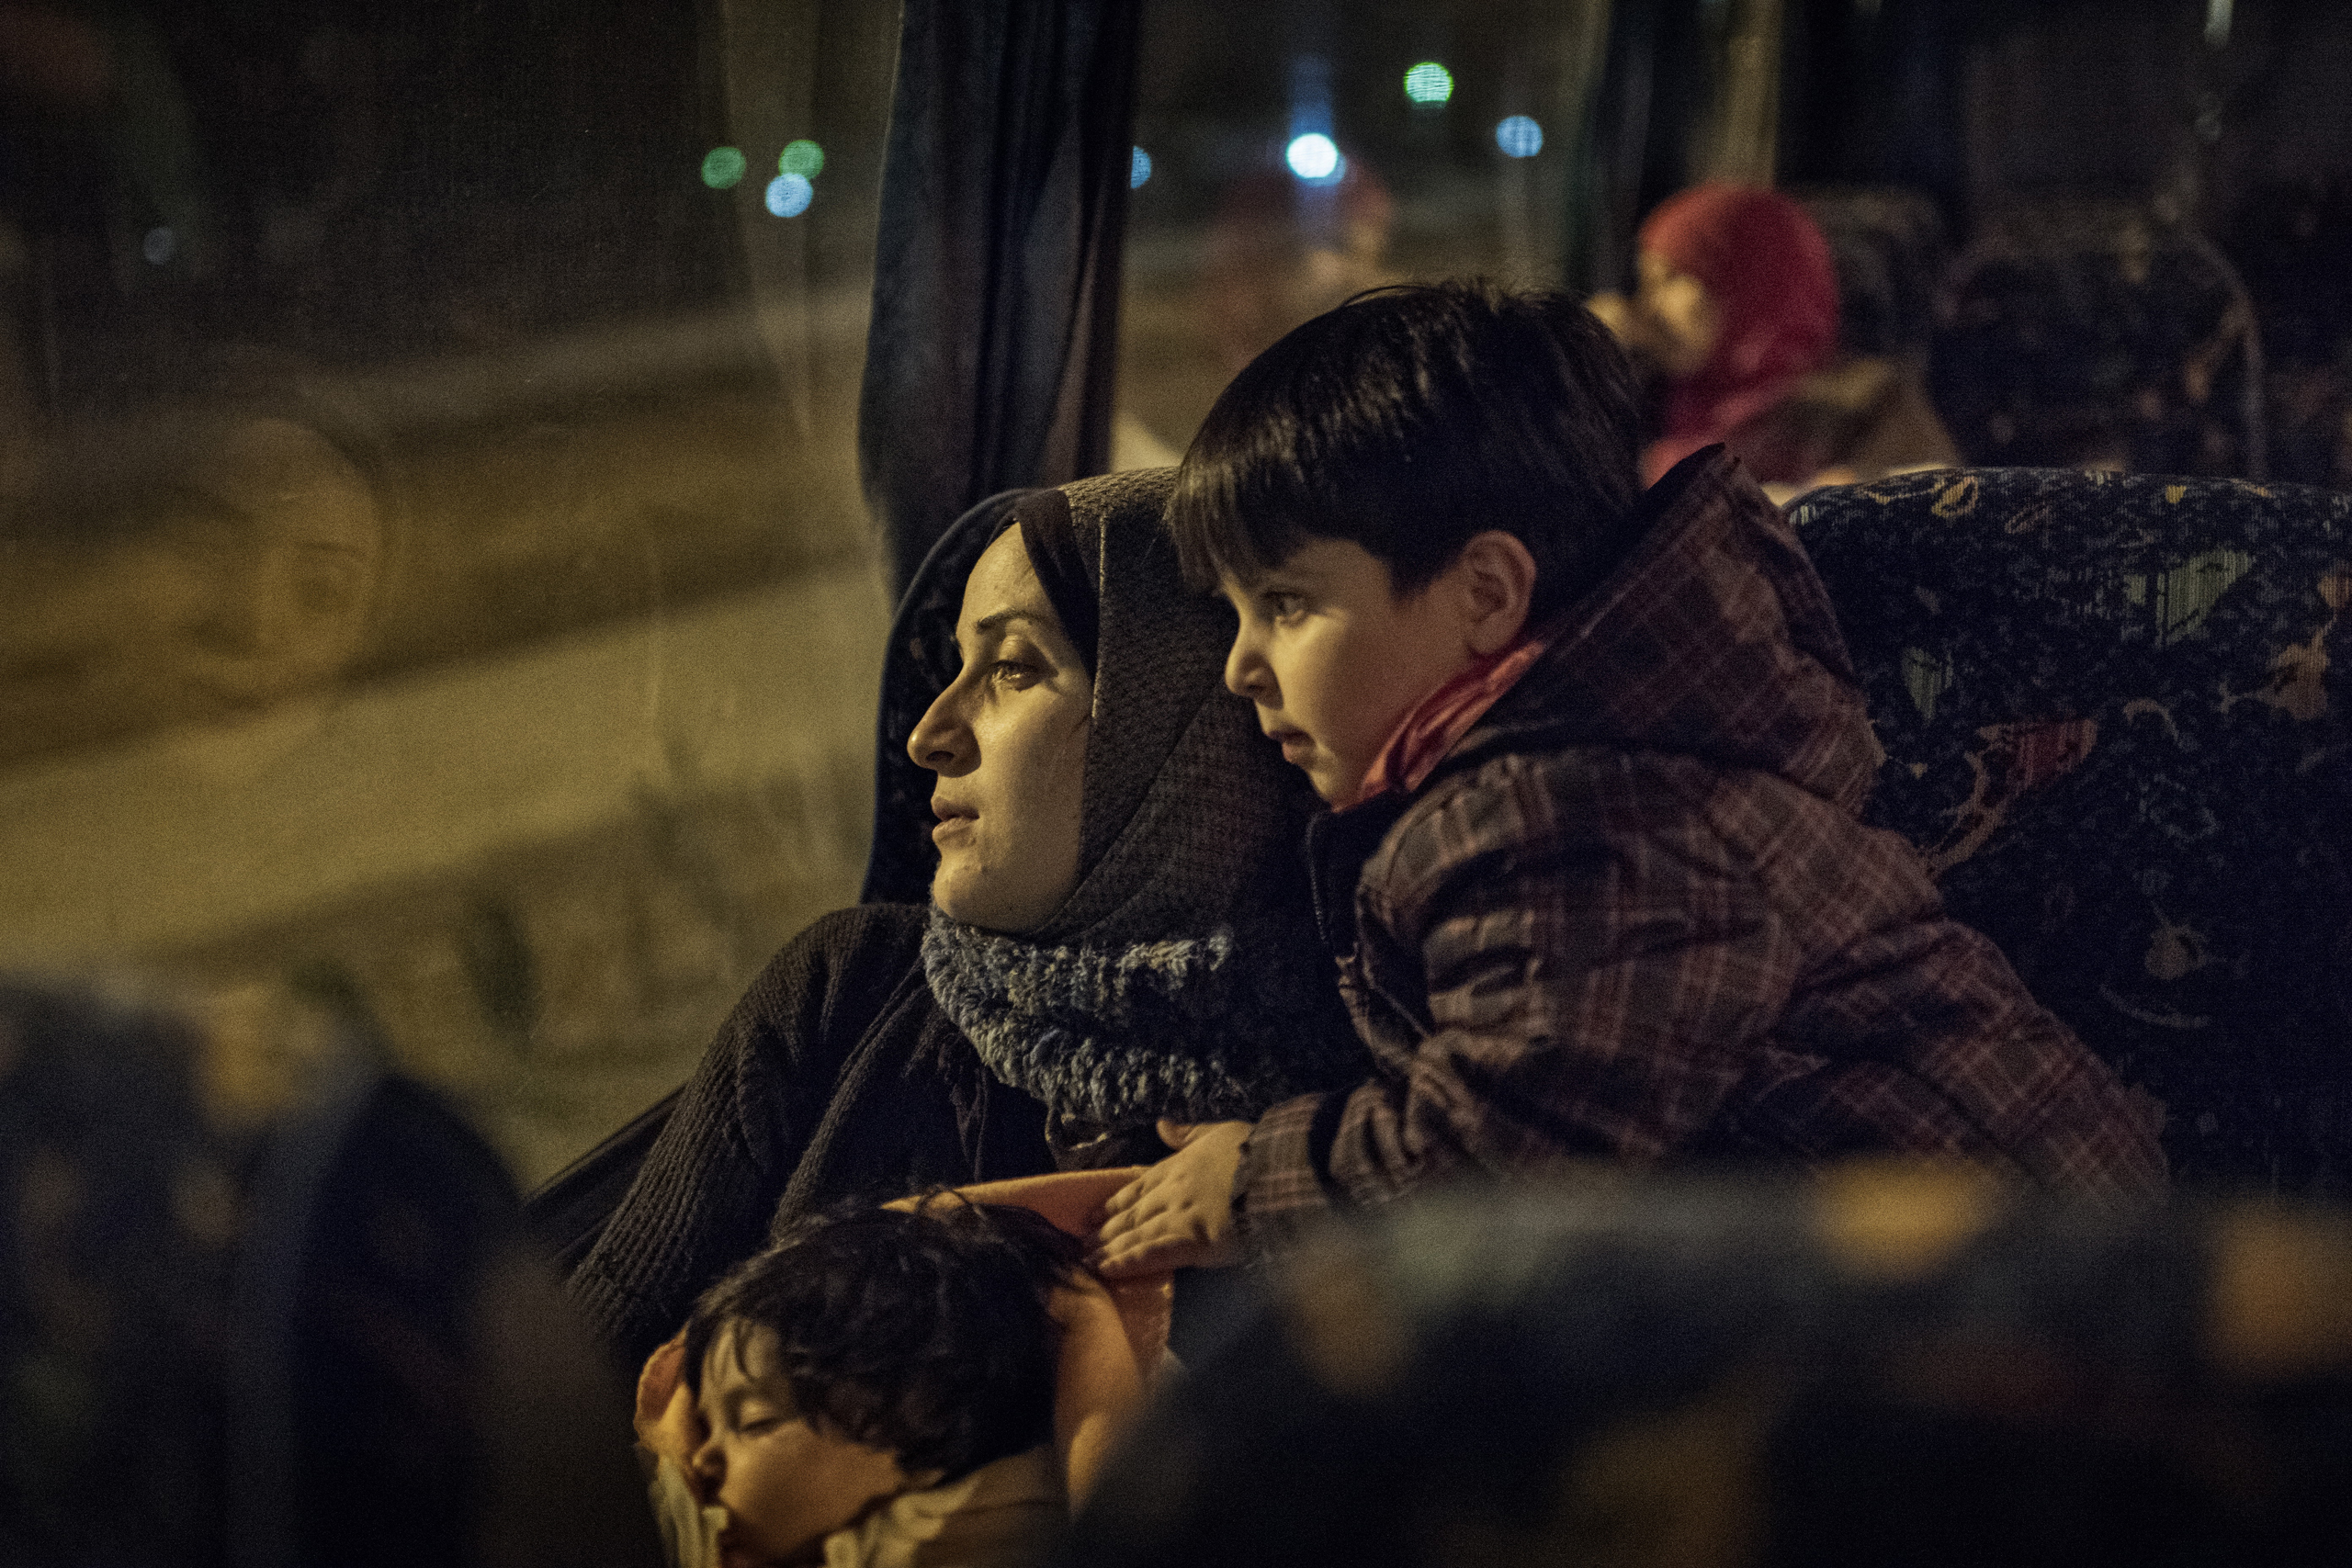 Taimaa Abazli, a Syrian refugee, with her baby Heln and son Wael, take an overnight bus to Athens, where they will learn which country will grant them asylum, Jan. 19, 2017.